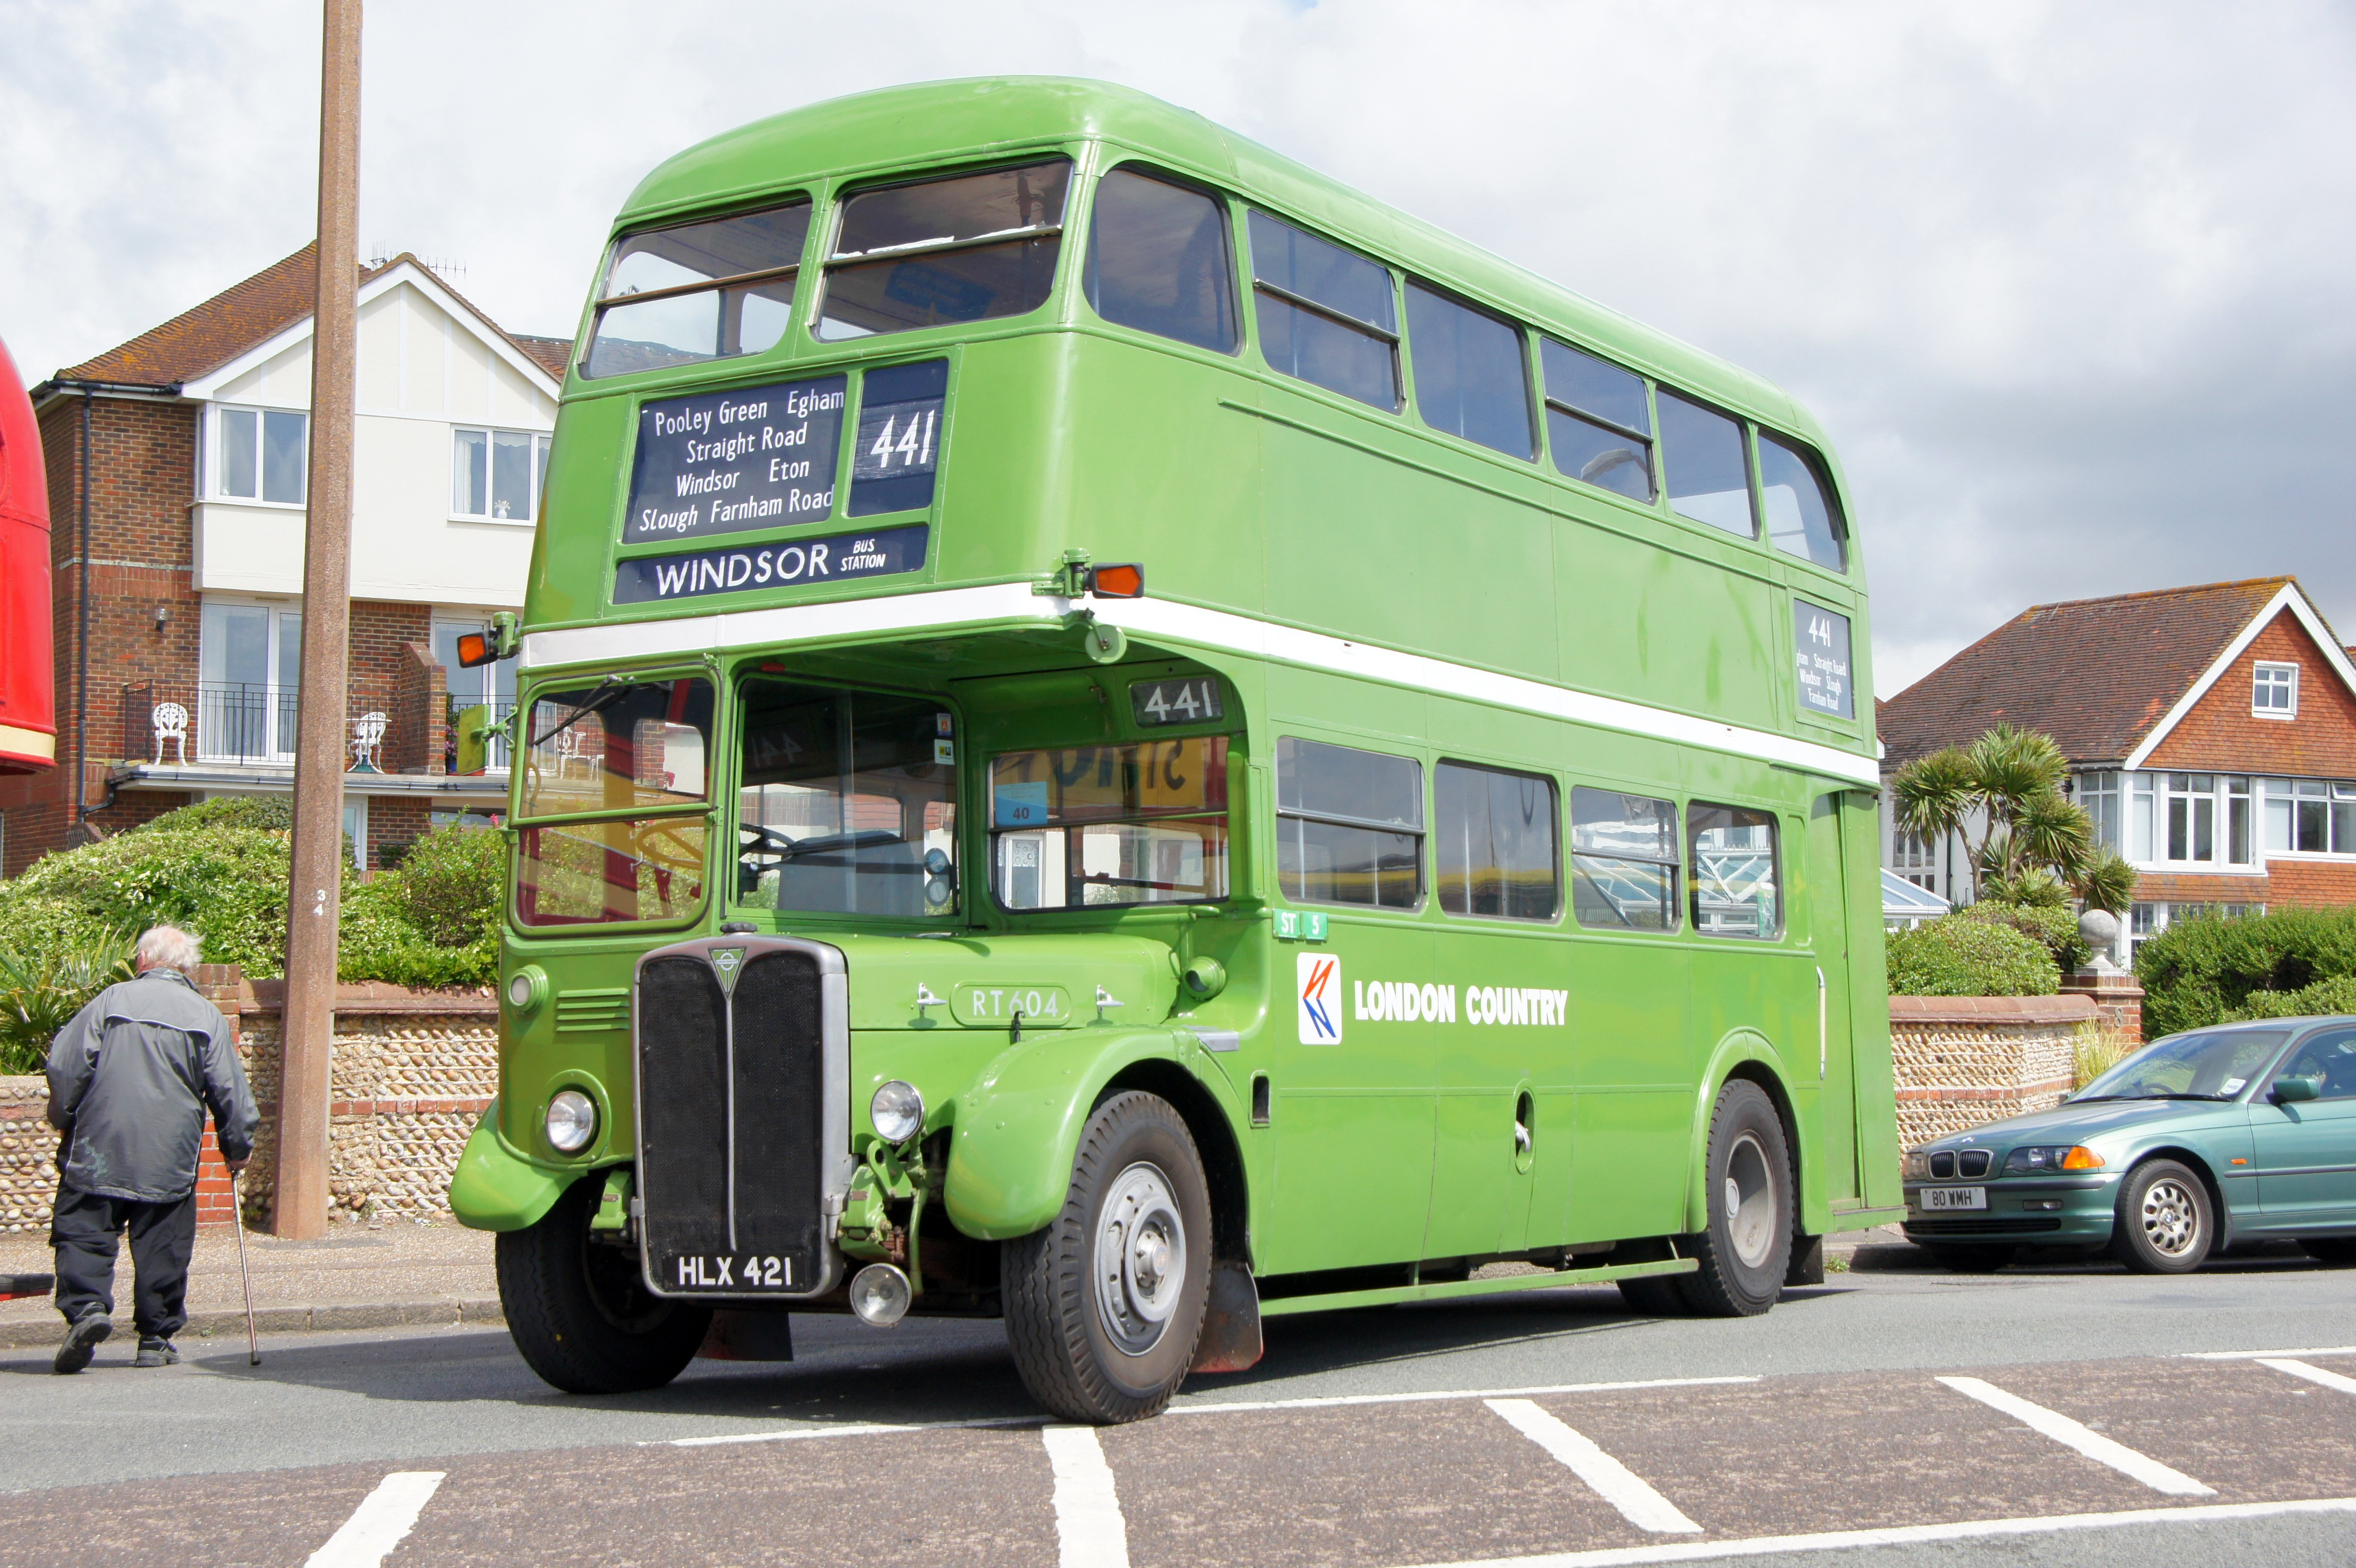 File:London Country bus RT604 (HLX 421), 2012 Worthing bus ...